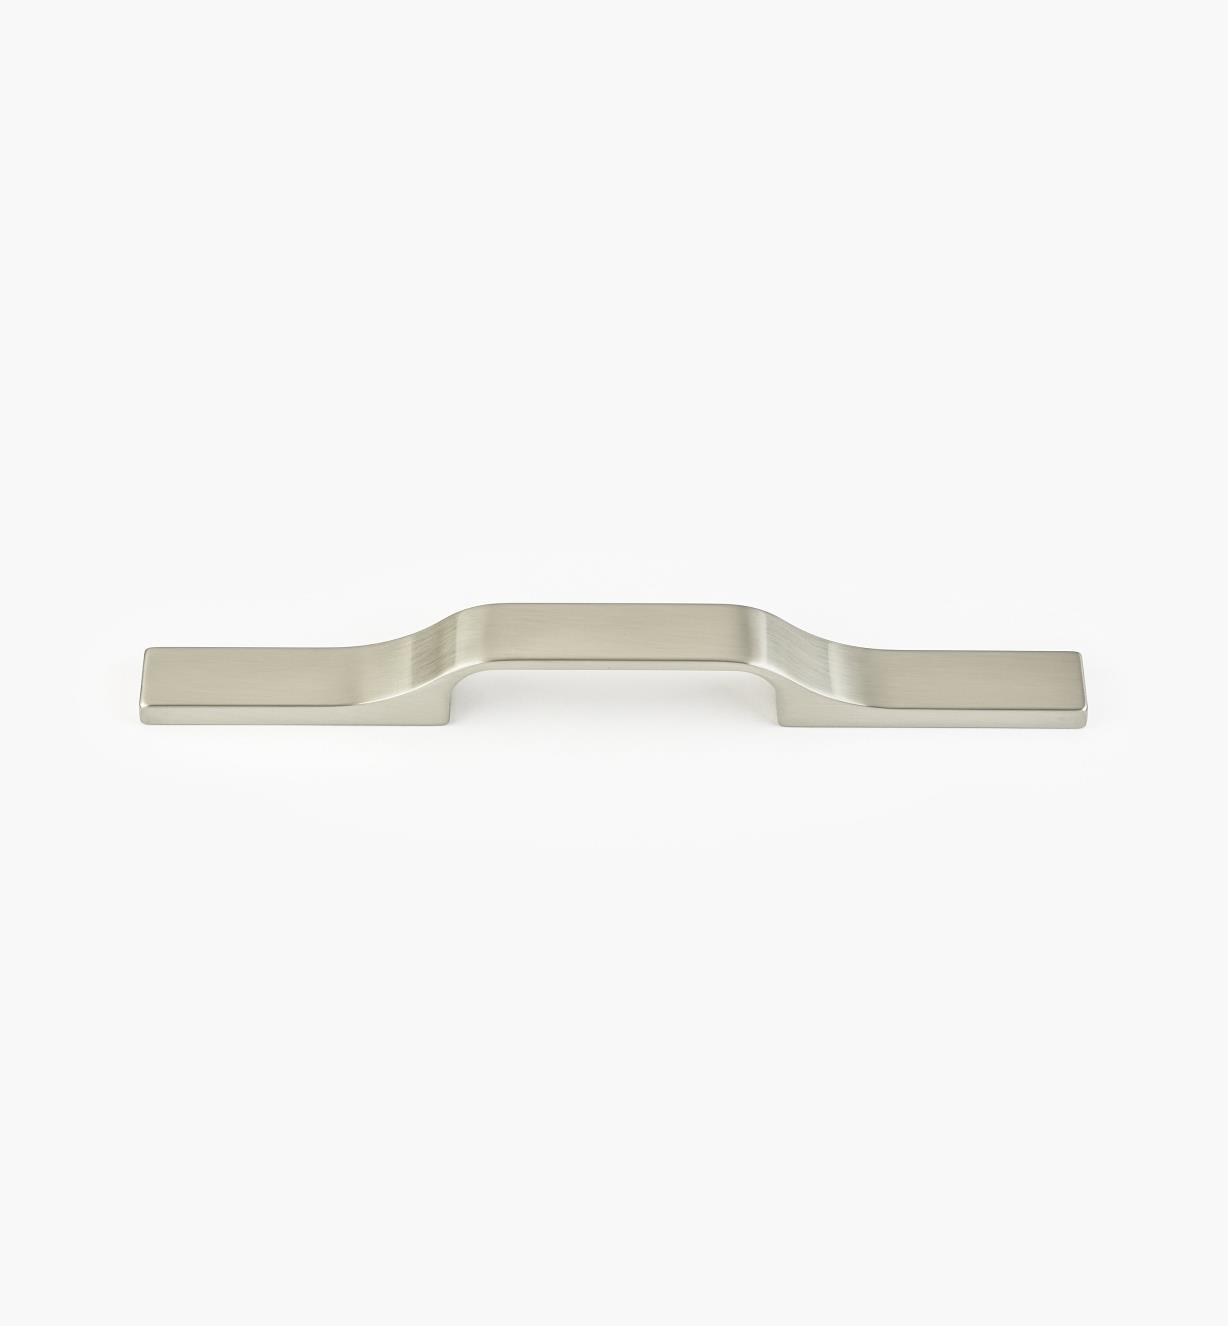 00W5531 - Large Hillside Satin Nickel Handle, 96mm to 224mm centers